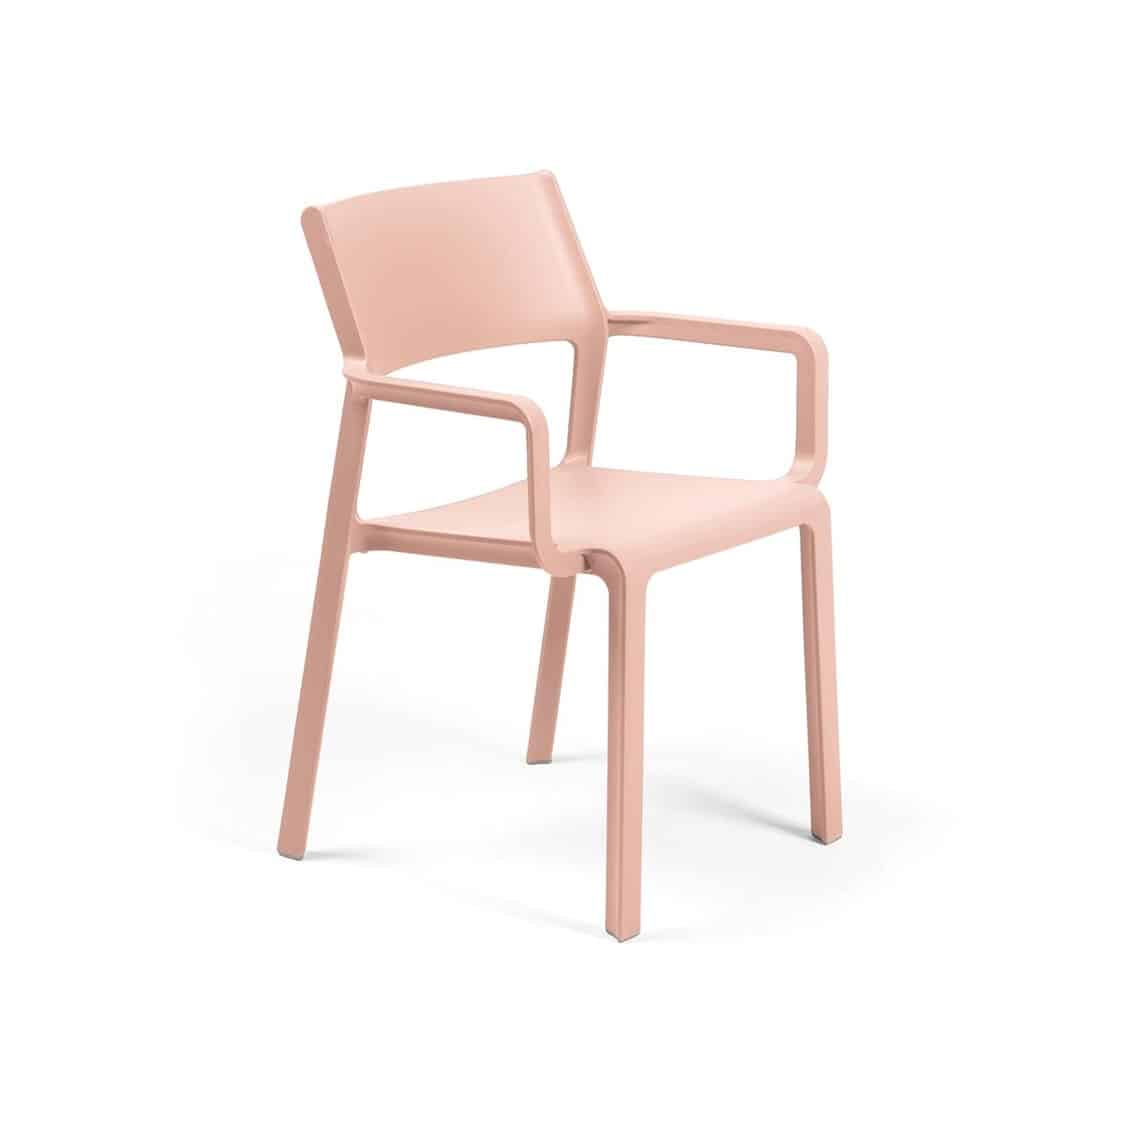 Trill Armchair outside outdoor chair restaurant bar coffee shop cafe DeFrae baby pink